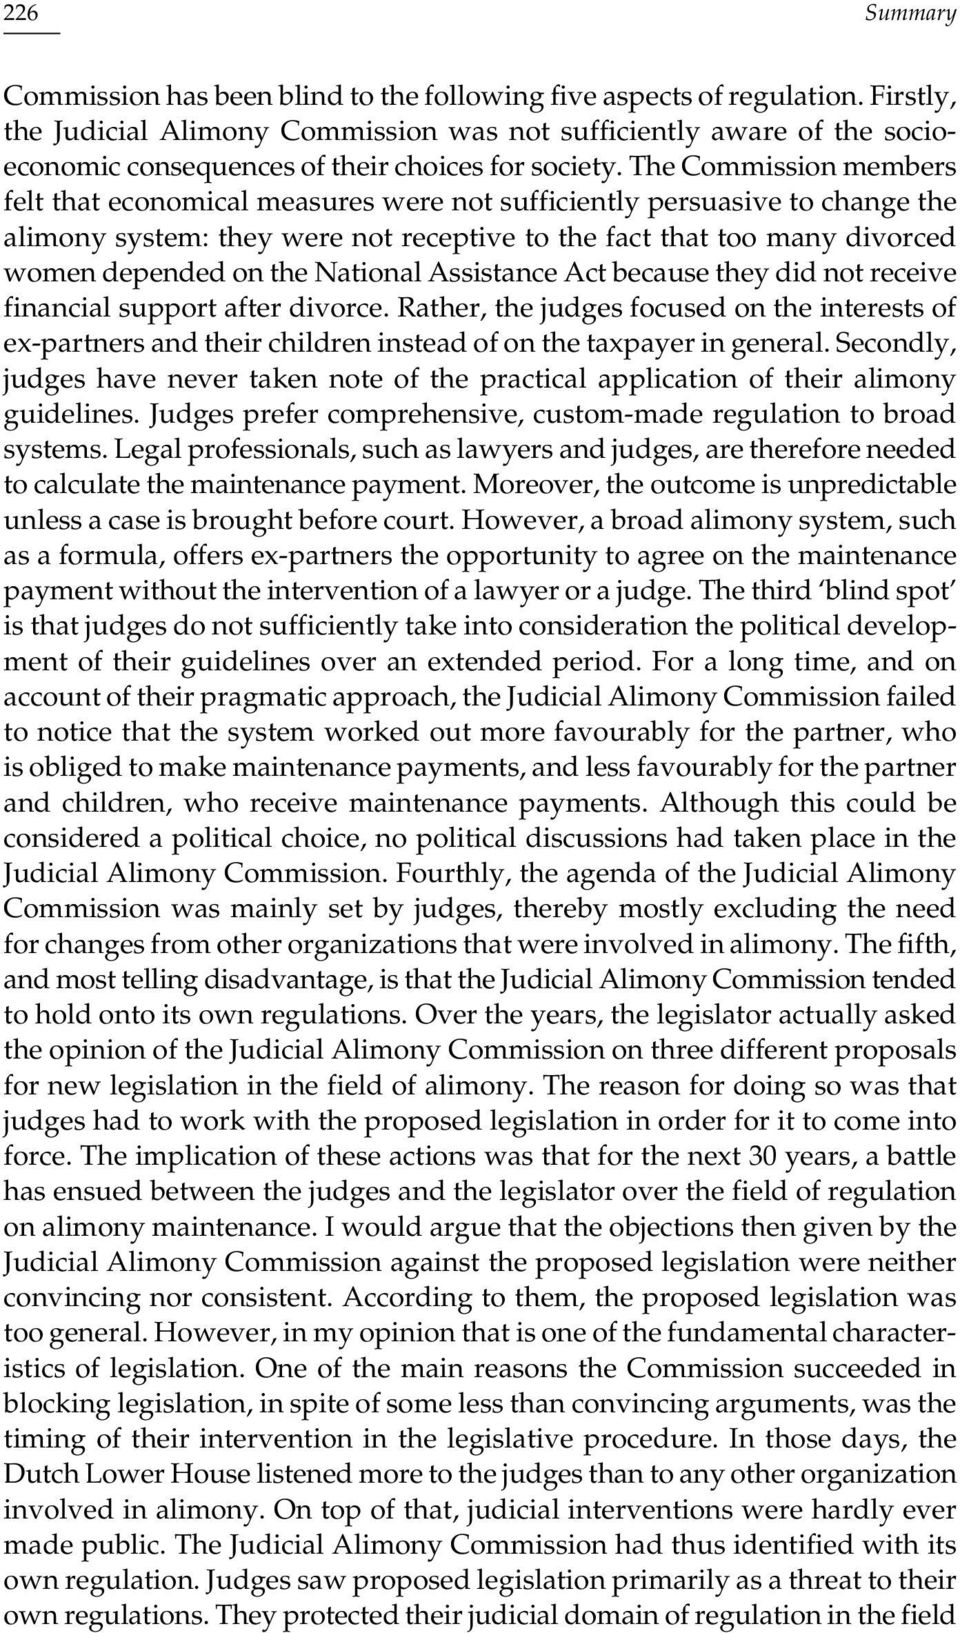 The Commission members felt that economical measures were not sufficiently persuasive to change the alimony system: they were not receptive to the fact that too many divorced women depended on the